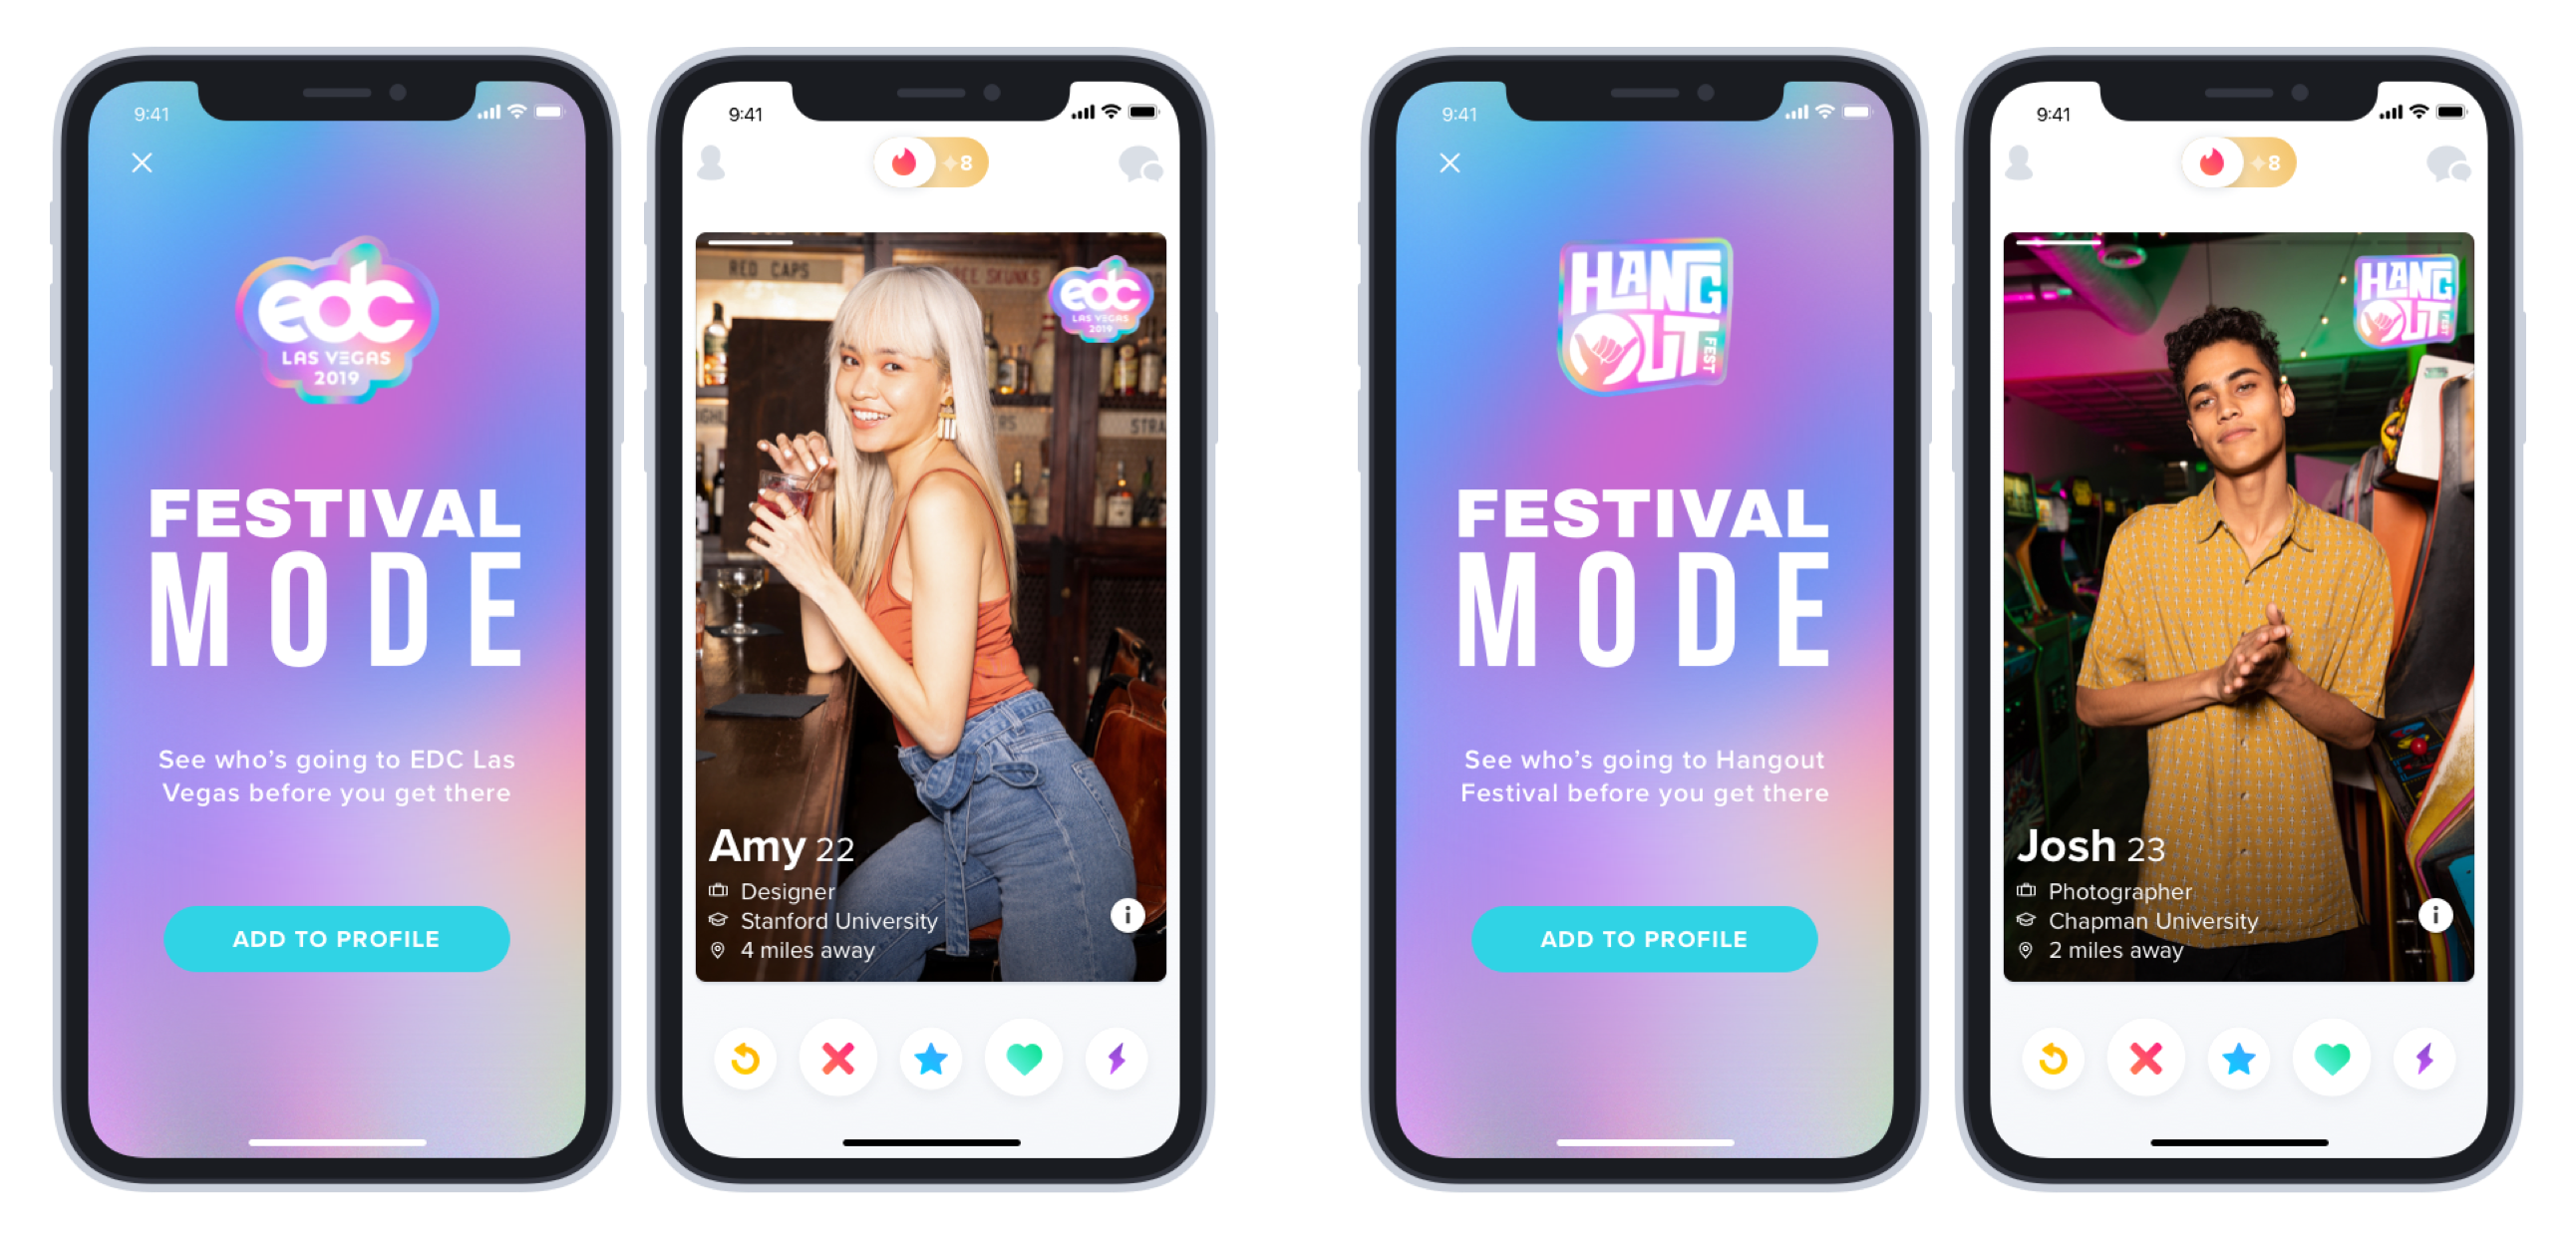 The new feature will allow users to meet up at a selection of festivals in the UK and US. Credit: Tinder